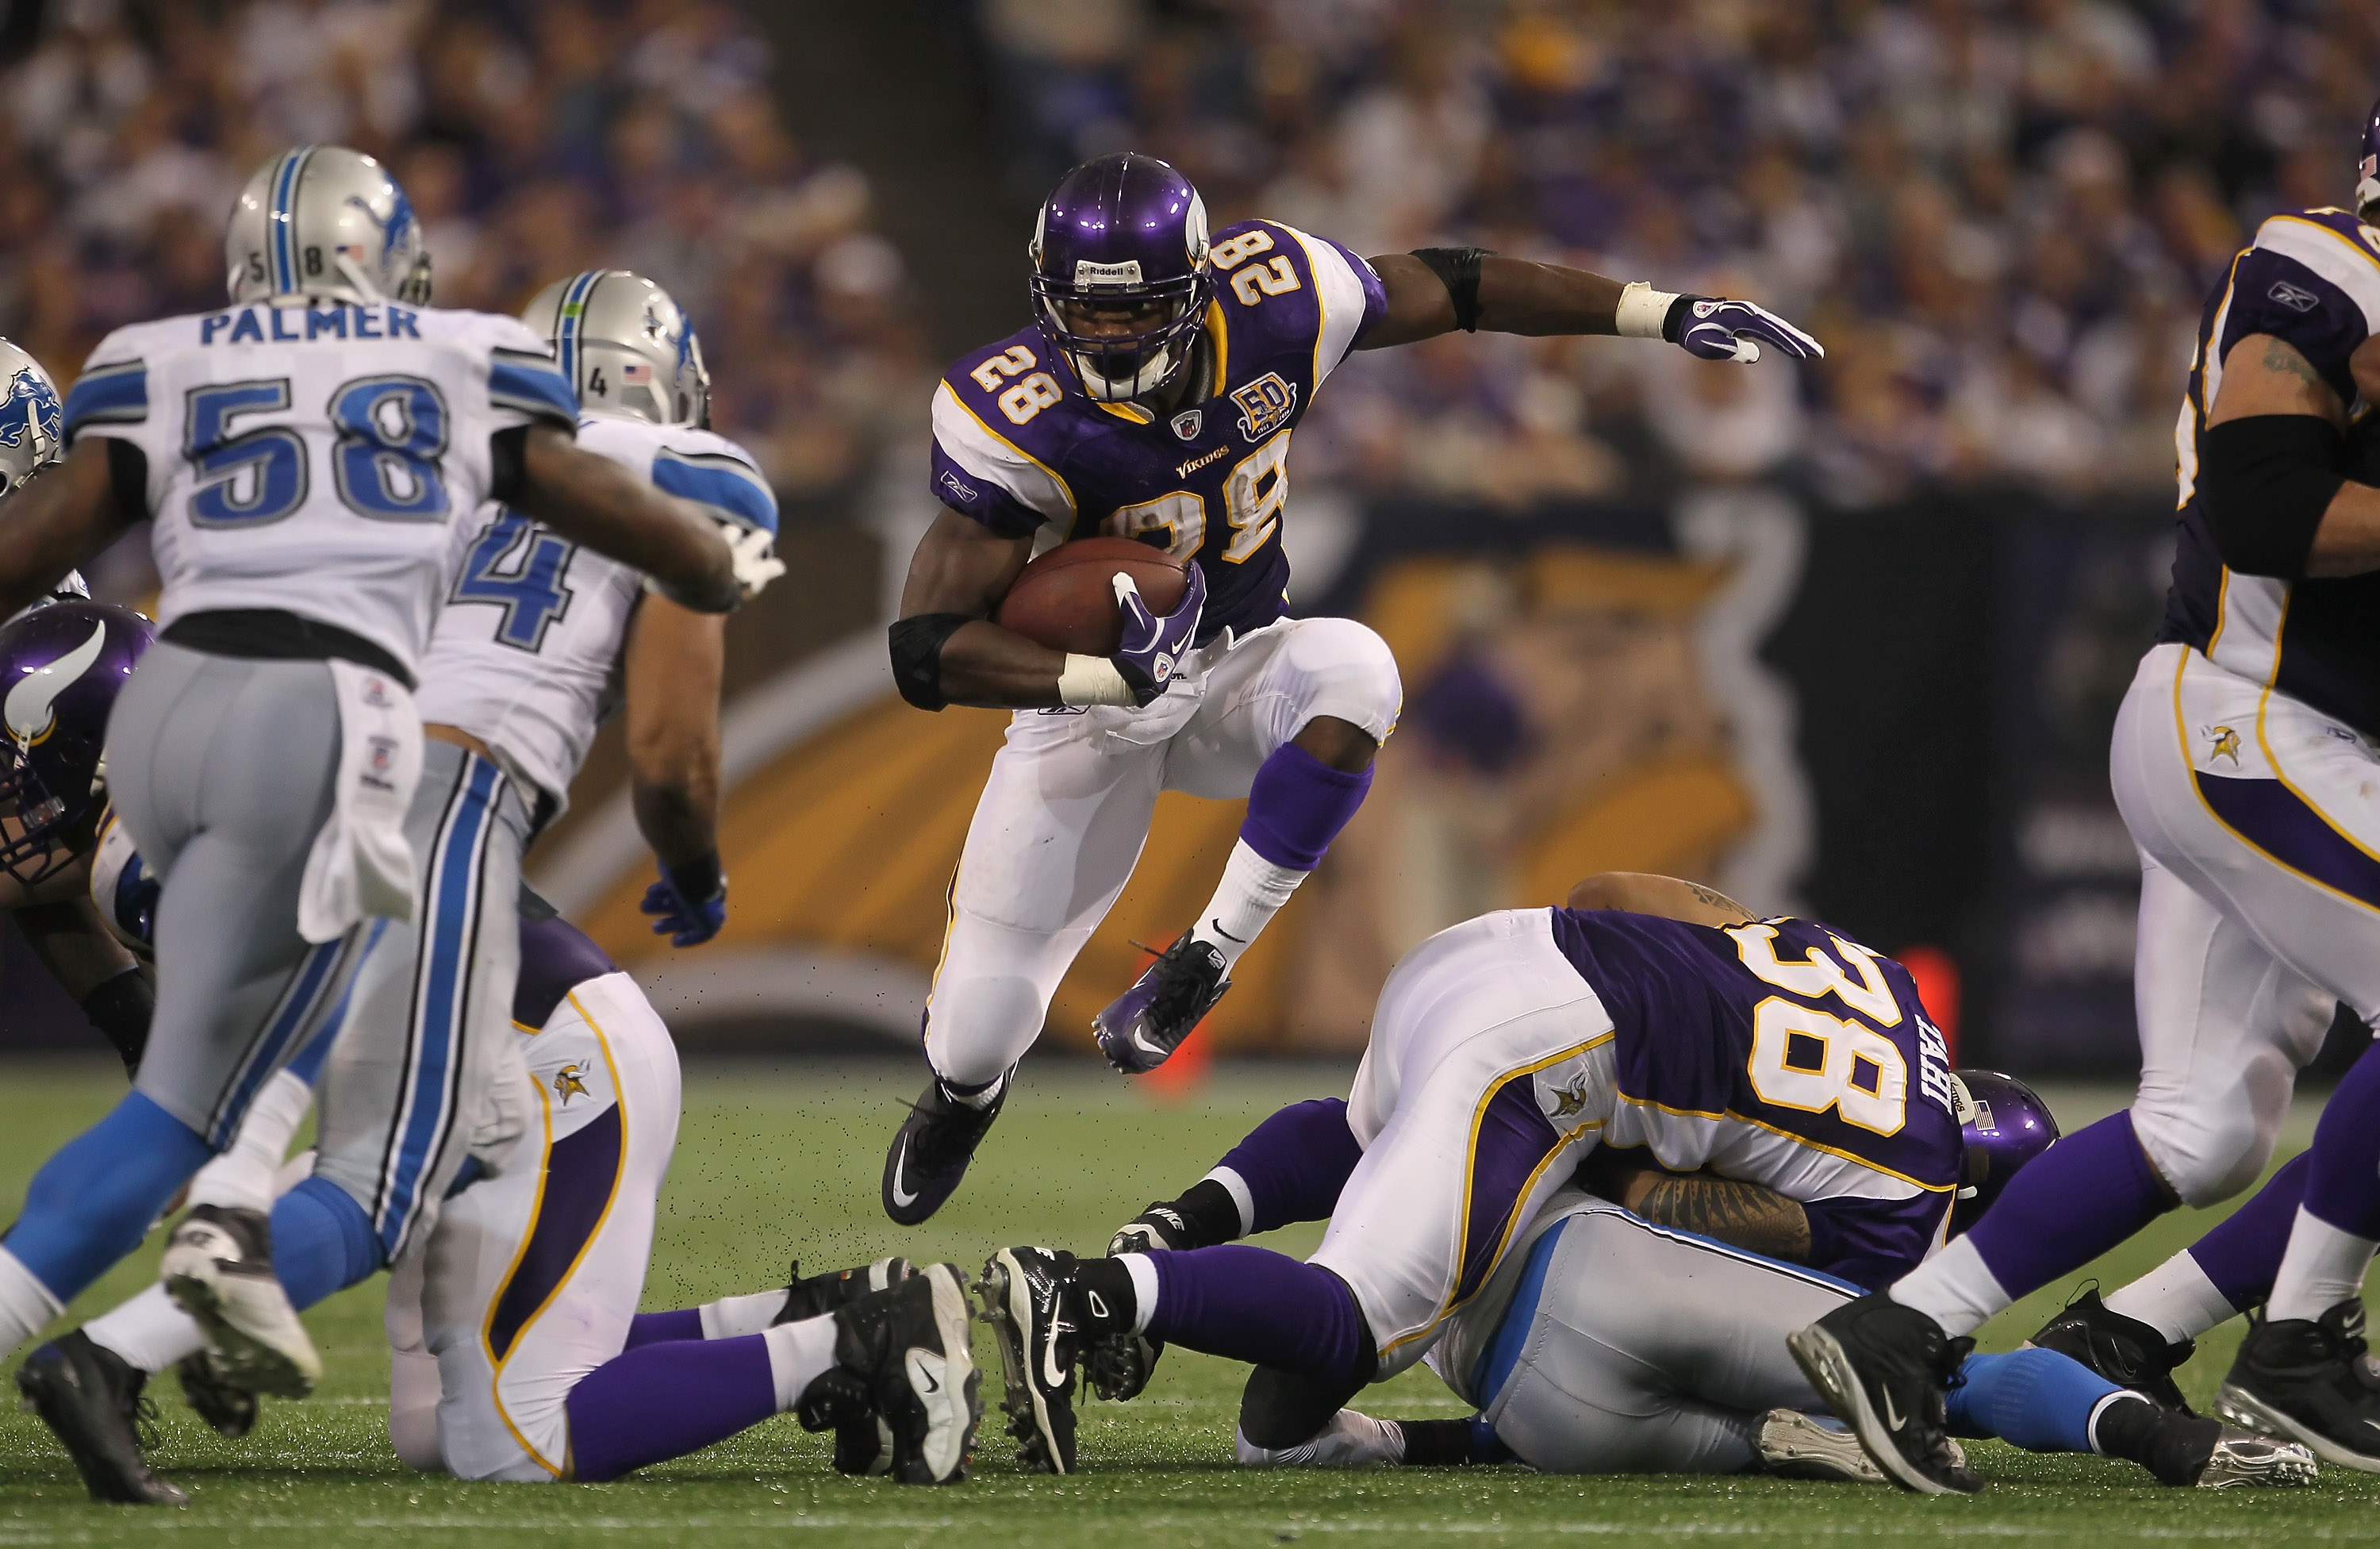 MINNEAPOLIS - SEPTEMBER 26:  Running back Adrian Peterson #28 of the Minnesota Vikings jumps through a hole while carrying the ball against the Detroit Lions during the second half at Hubert H. Humphrey Metrodome on September 26, 2010 in Minneapolis, Minn